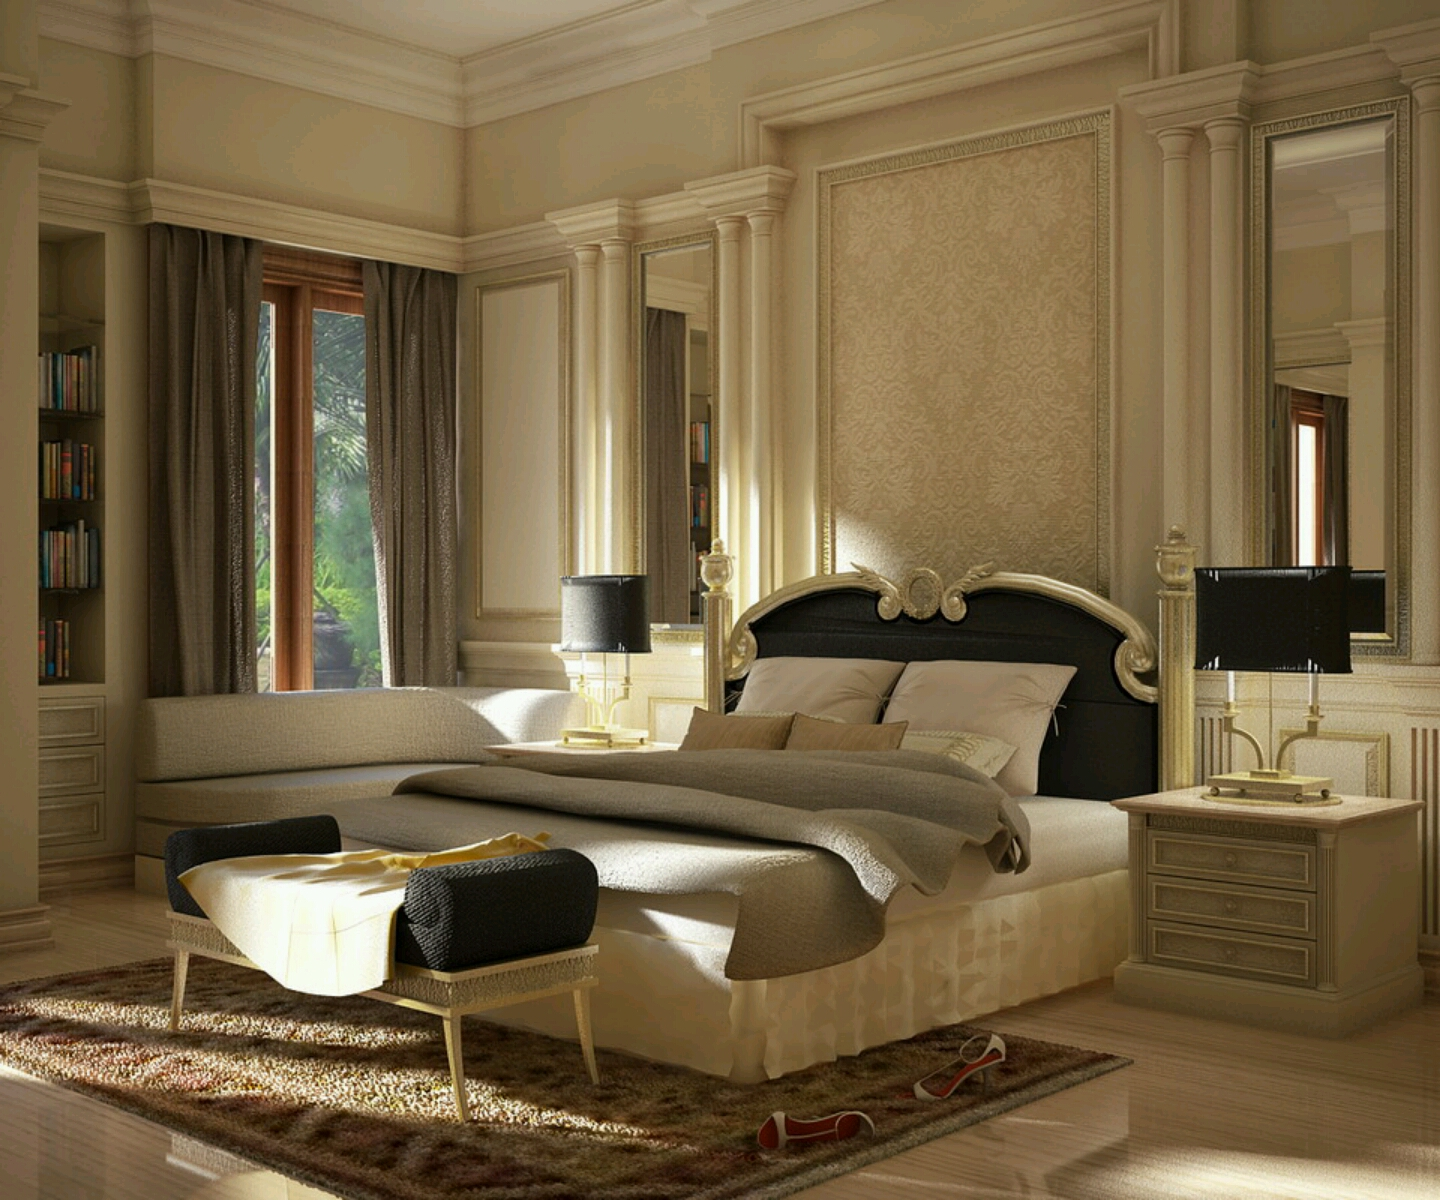 Http Vintageromantichome Blogspot Com 2012 12 Modern Luxury Bedroom Furniture Designs Html